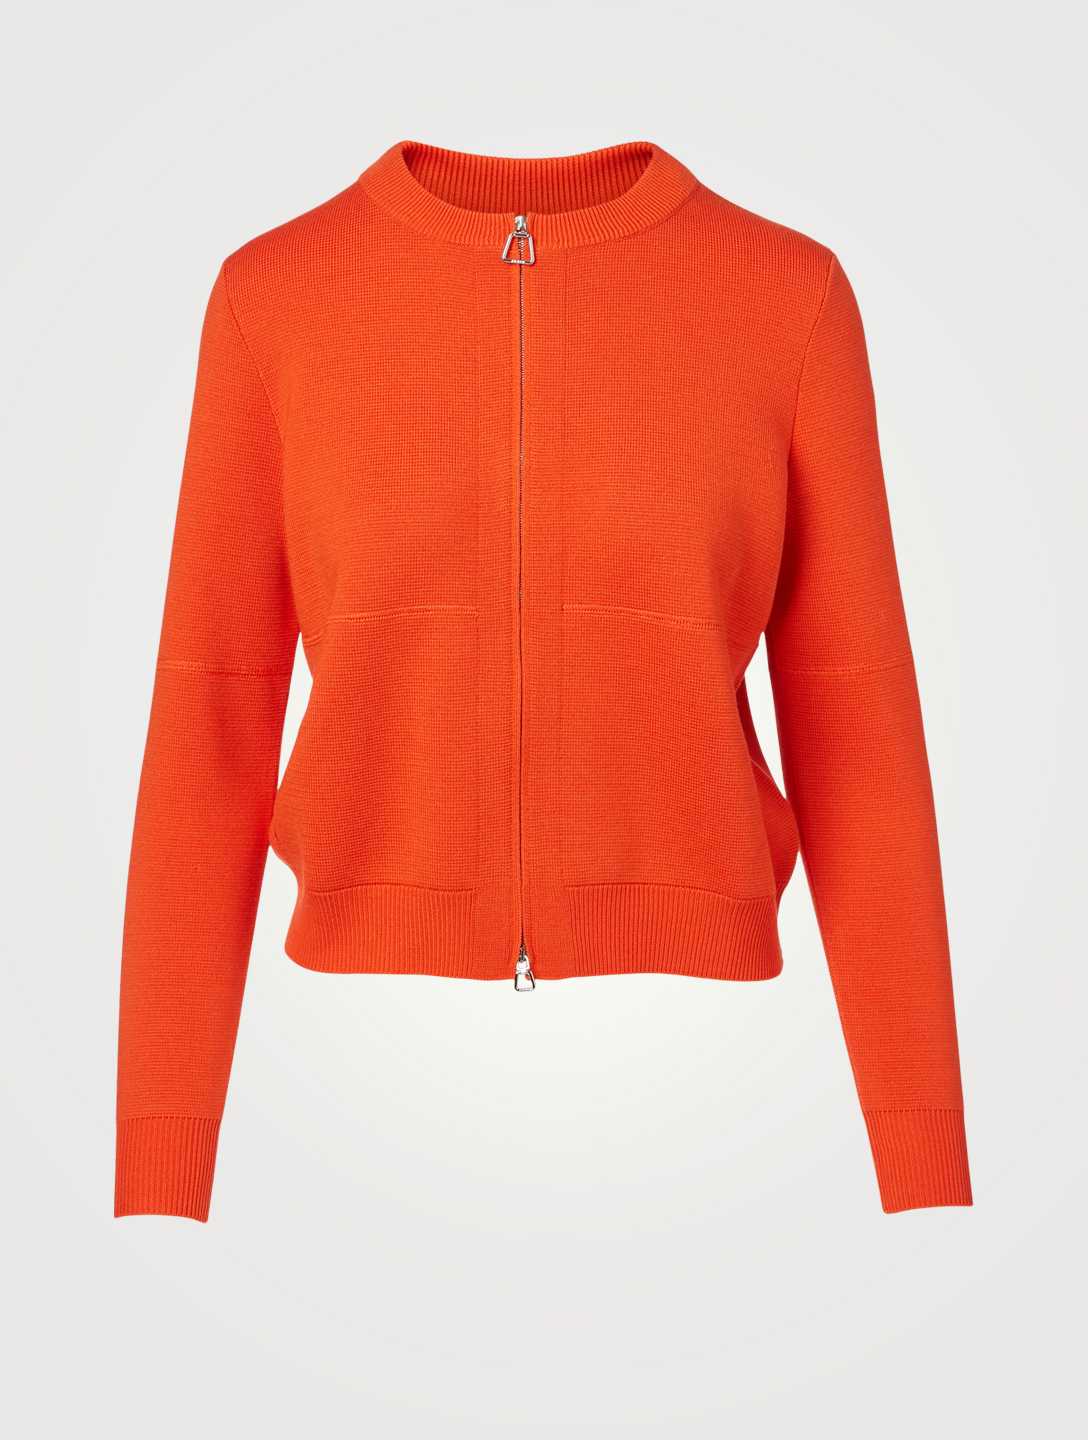 AKRIS Wool And Silk Cropped Cardigan Women's Orange